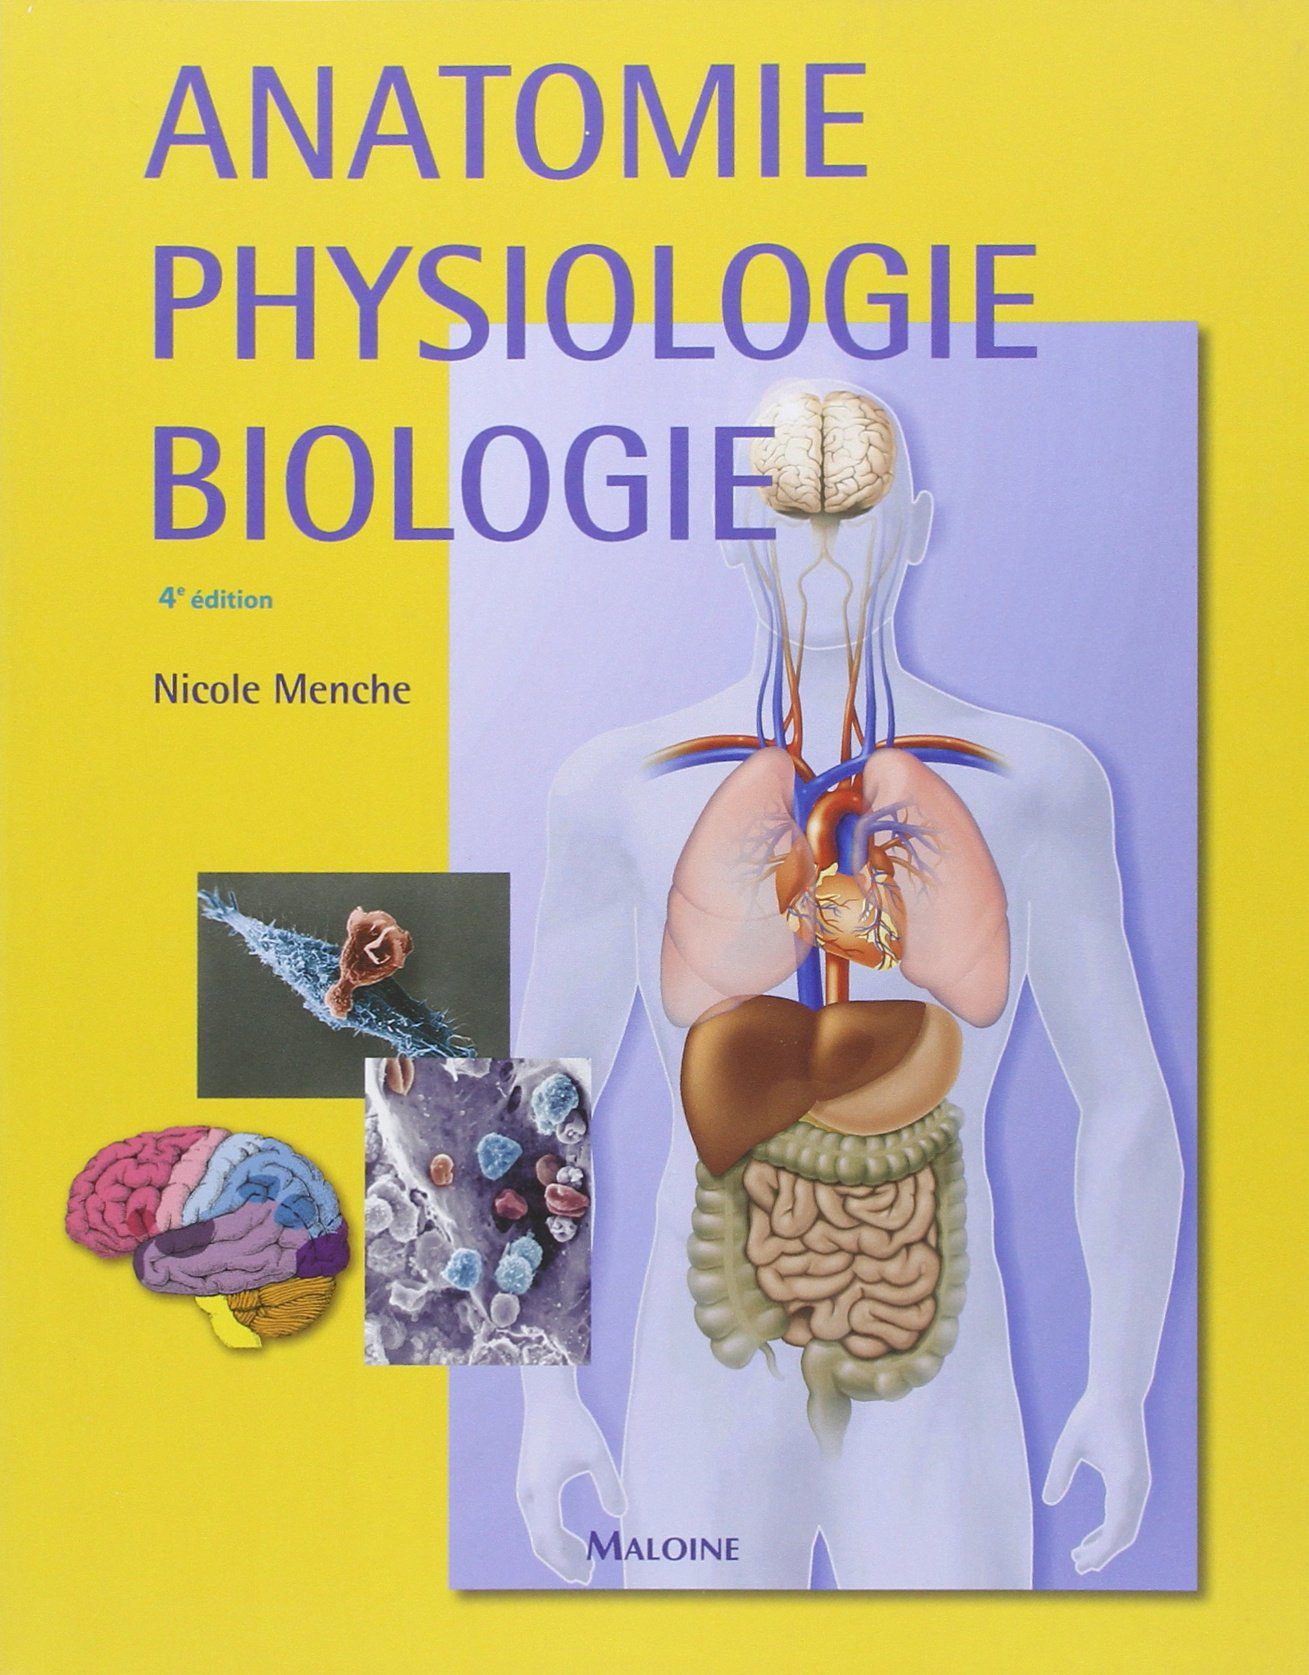 Anatomie, physiologie, biologie (French Edition): 9782224030766 ...